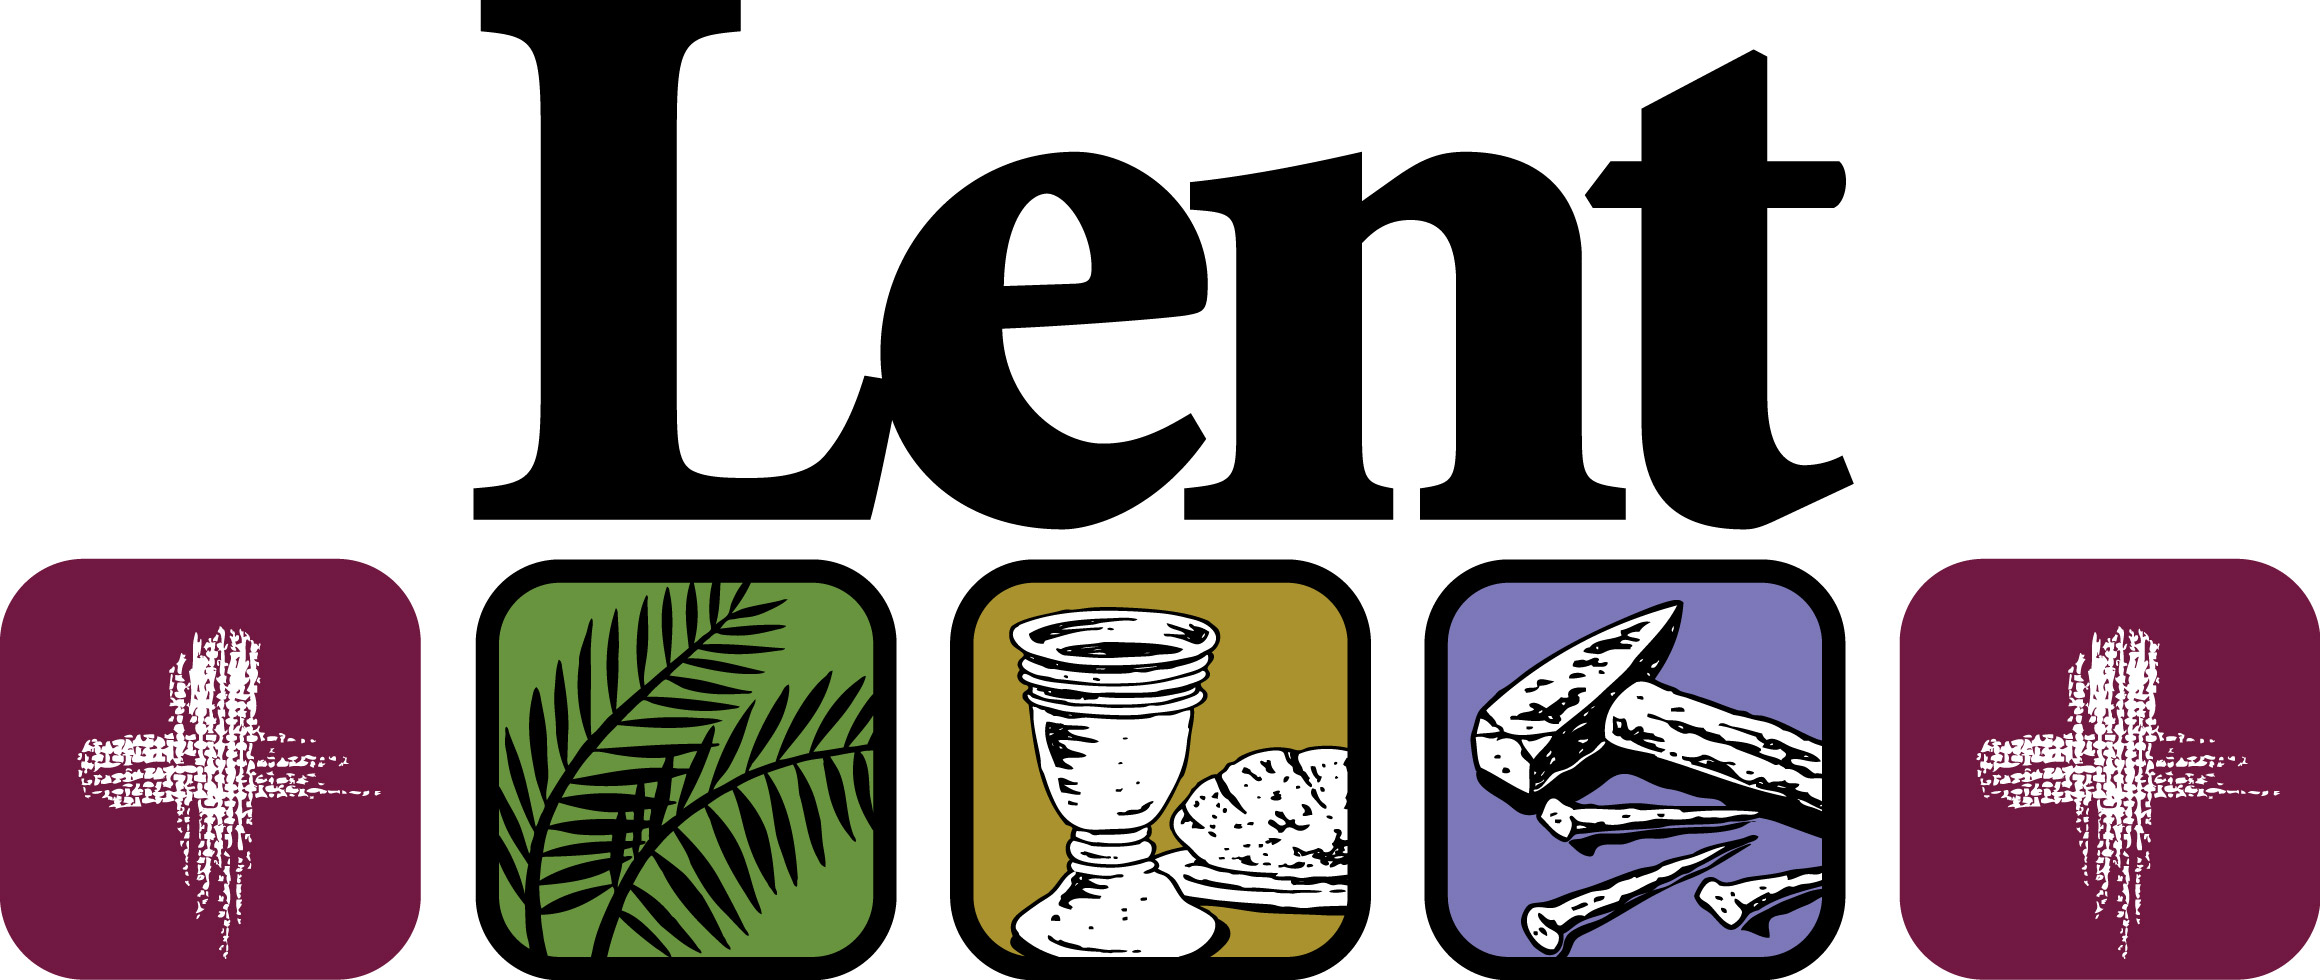 Catholic Clipart Lent.